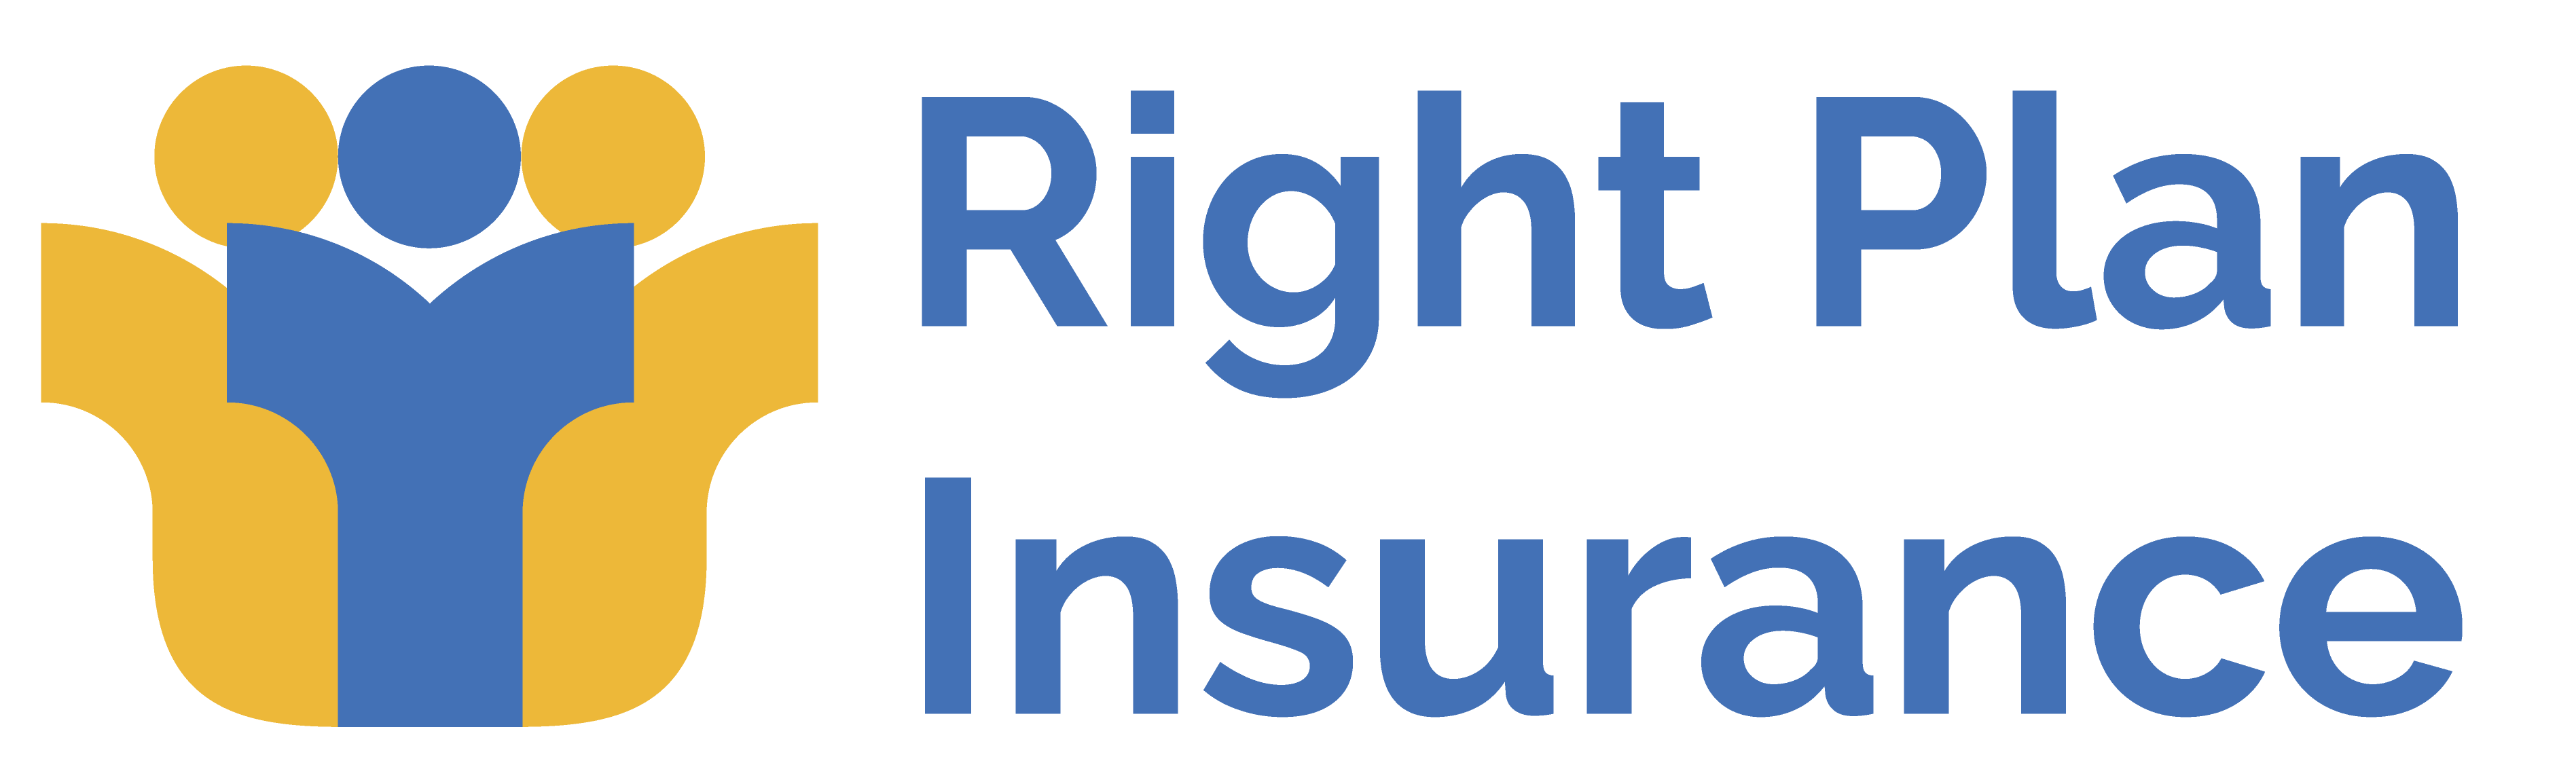 Right Plan Insurance